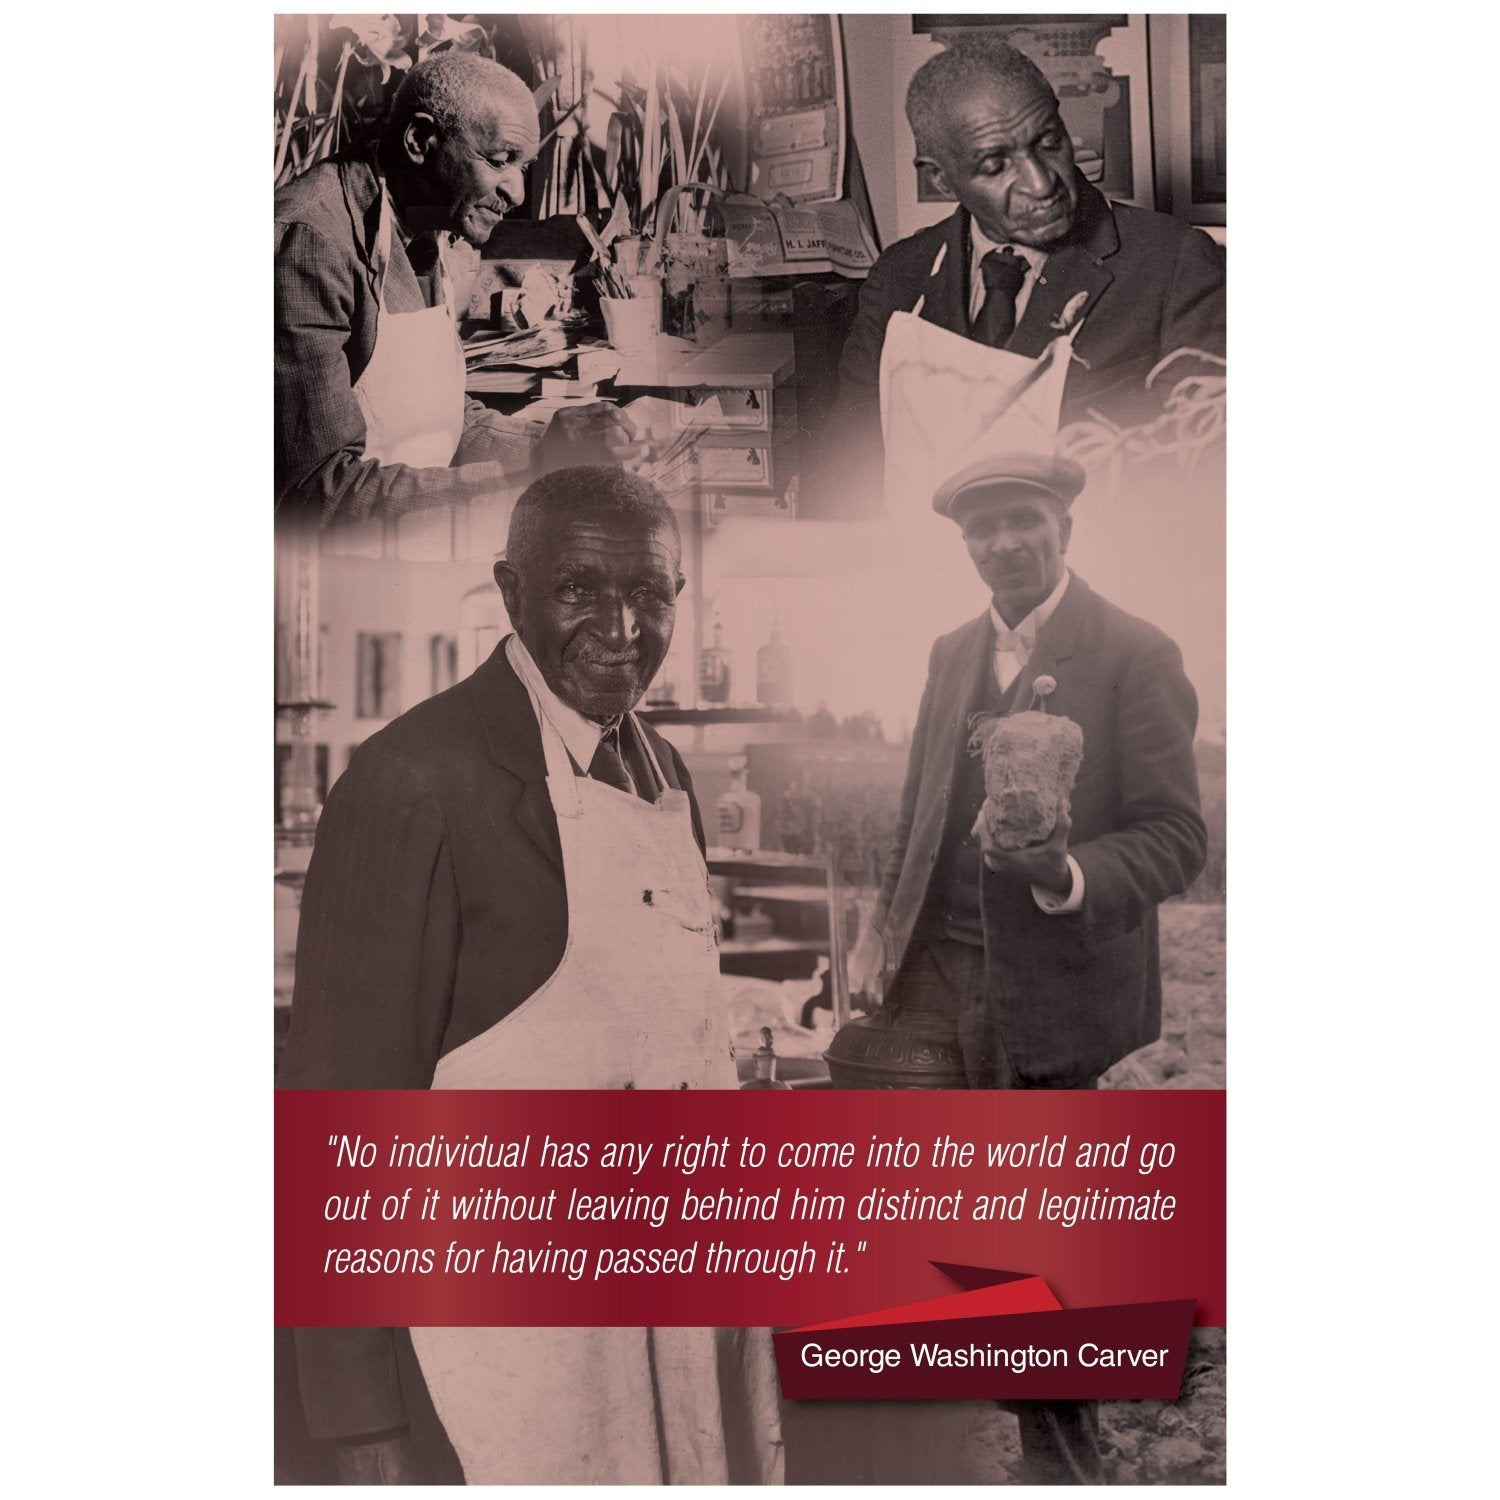 George Washington Carver: Legacy by Sankofa Designs